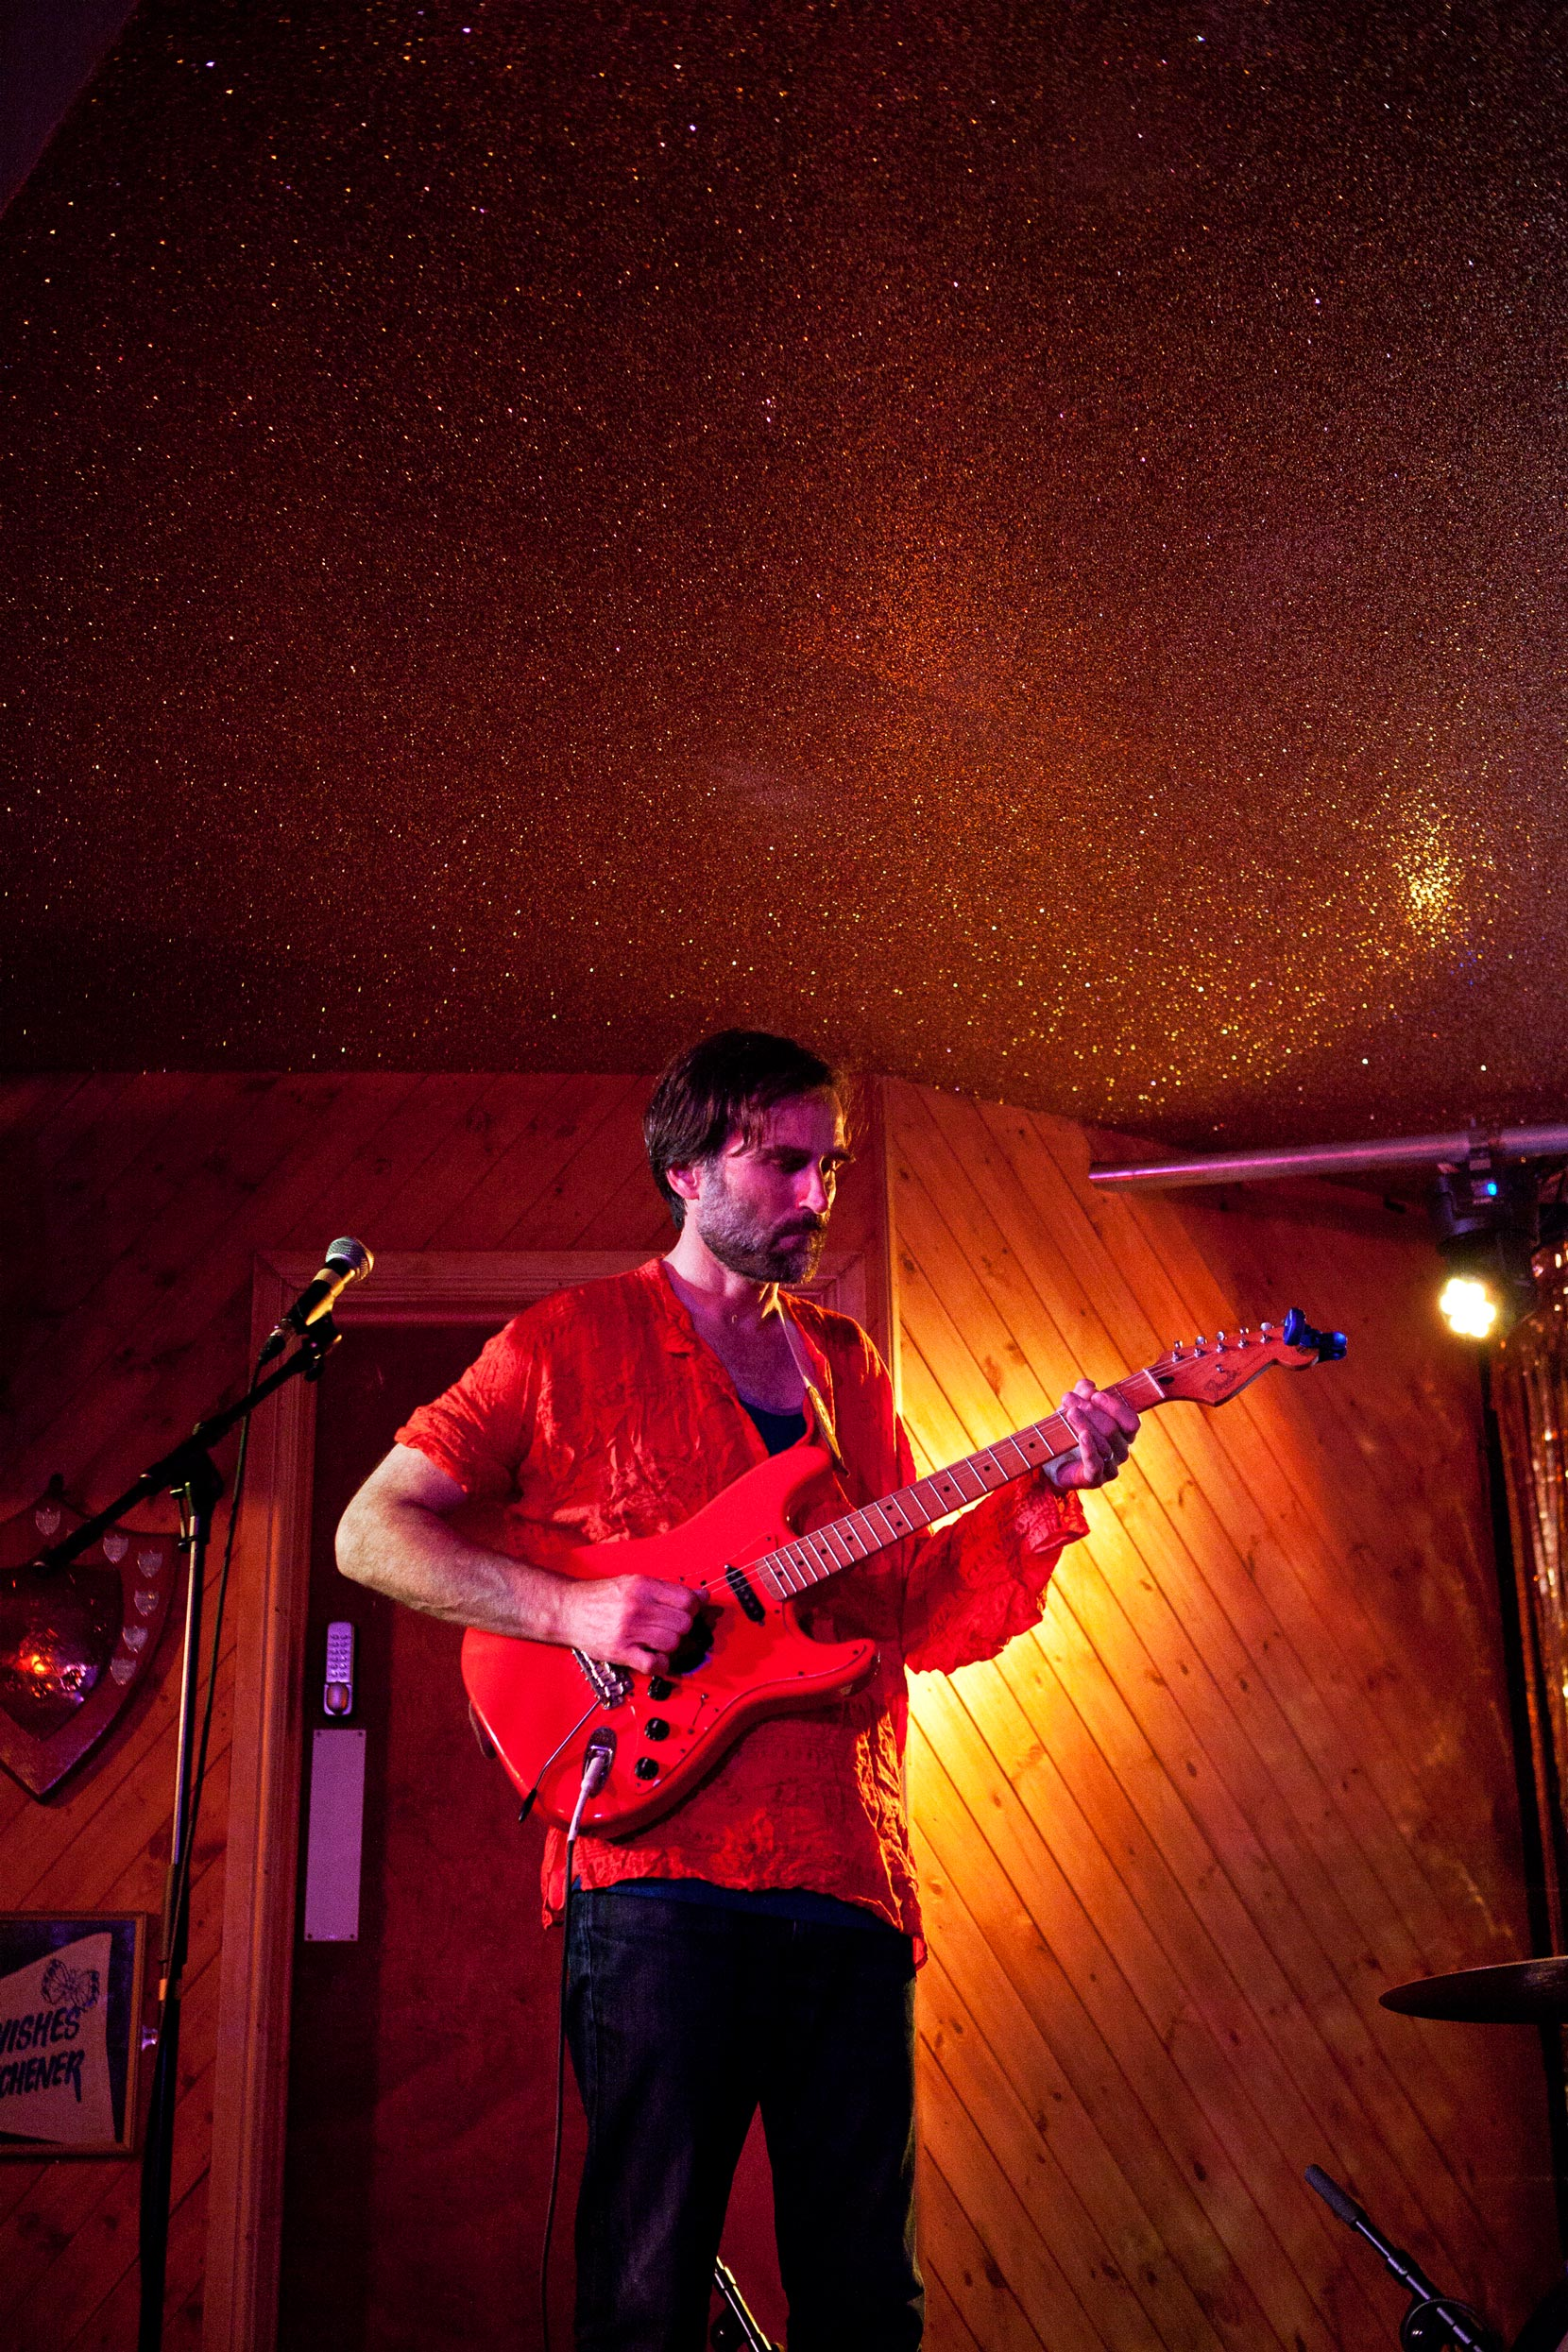 Neil Michael Hagerty performing with the Howling Hex at London's Moth Club, 2016. Photo by Declan Slattery.